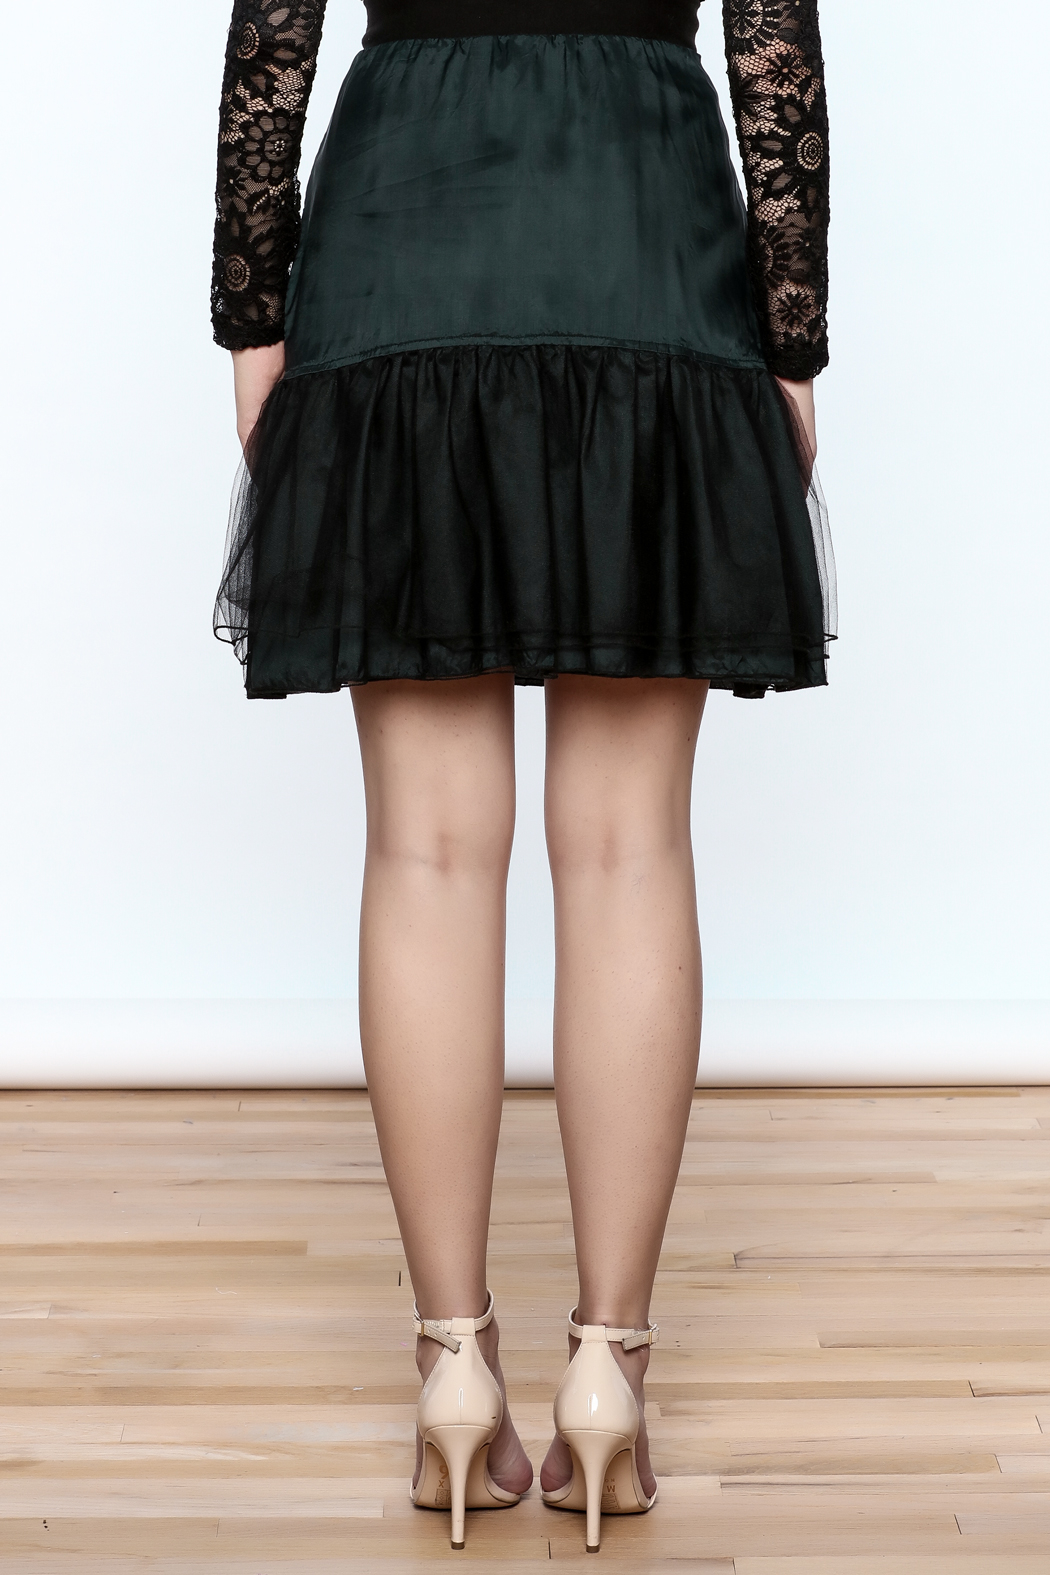 Neesh by D.A.R. Reversible Tutu Skirt - Back Cropped Image